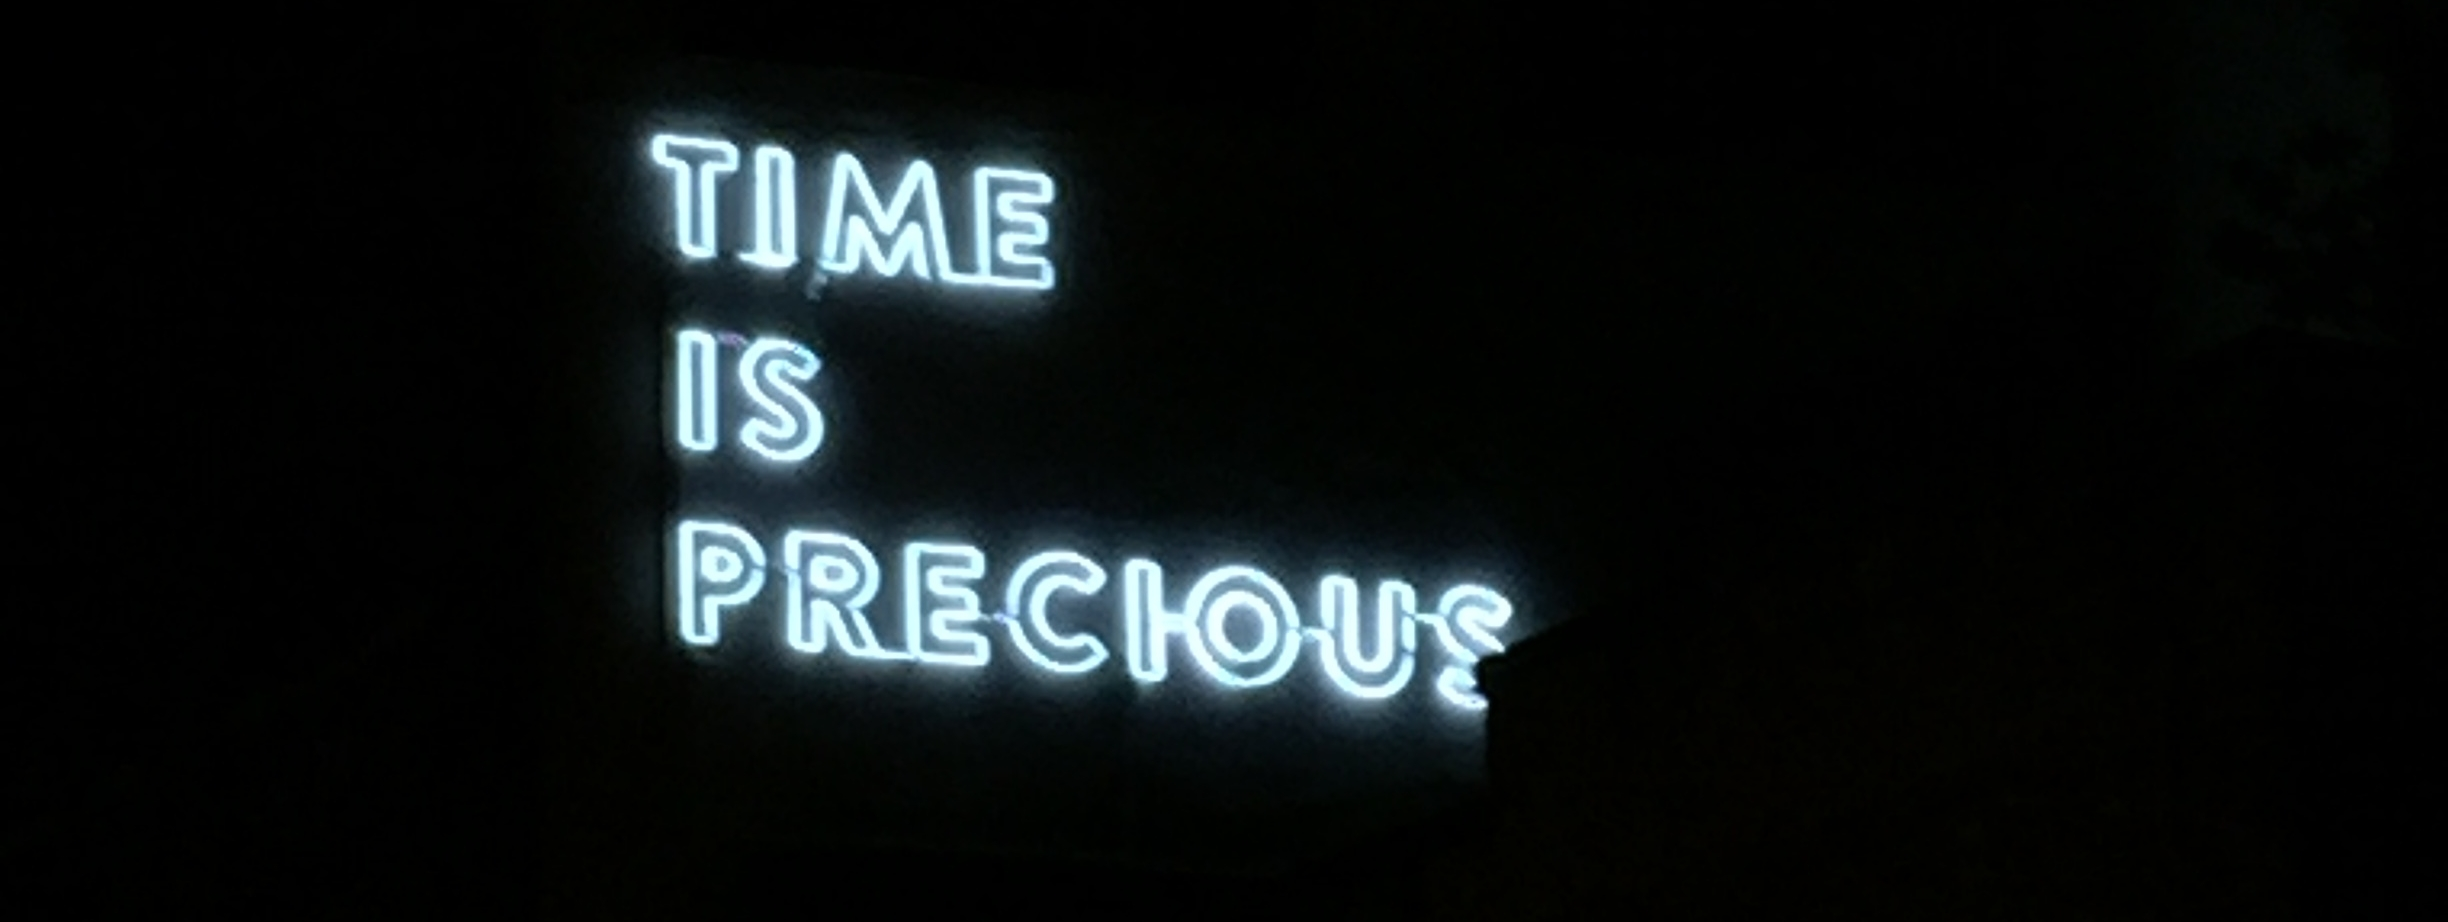 Snapped a picture of this lit up sign while walking around Gas Town. I couldn't help but feel as though it was a great sign to start this spontaneous trip, as well as a good reminder for everyone about life.